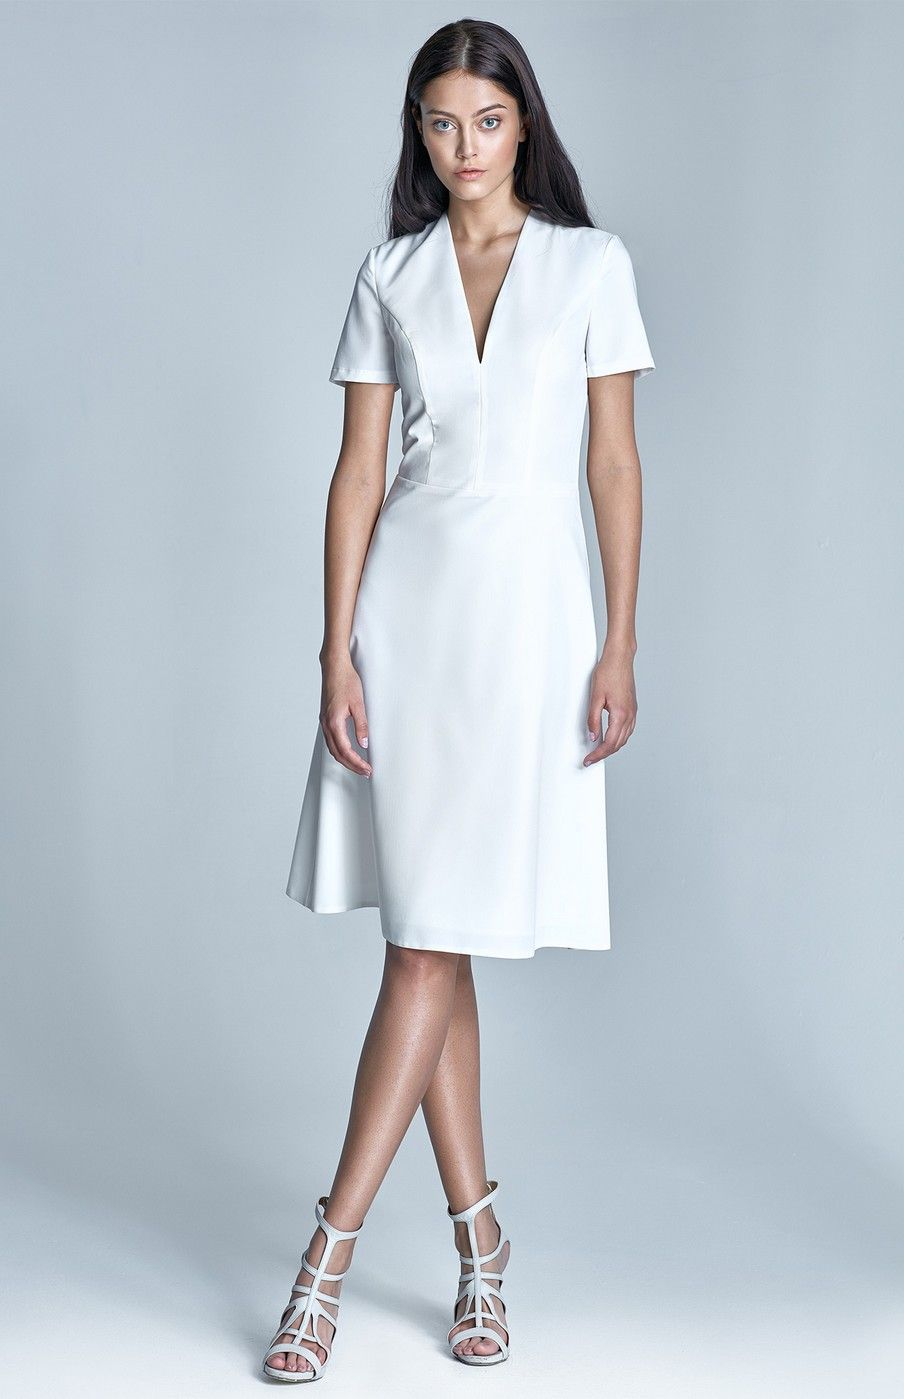 Robe cocktail blanche chic